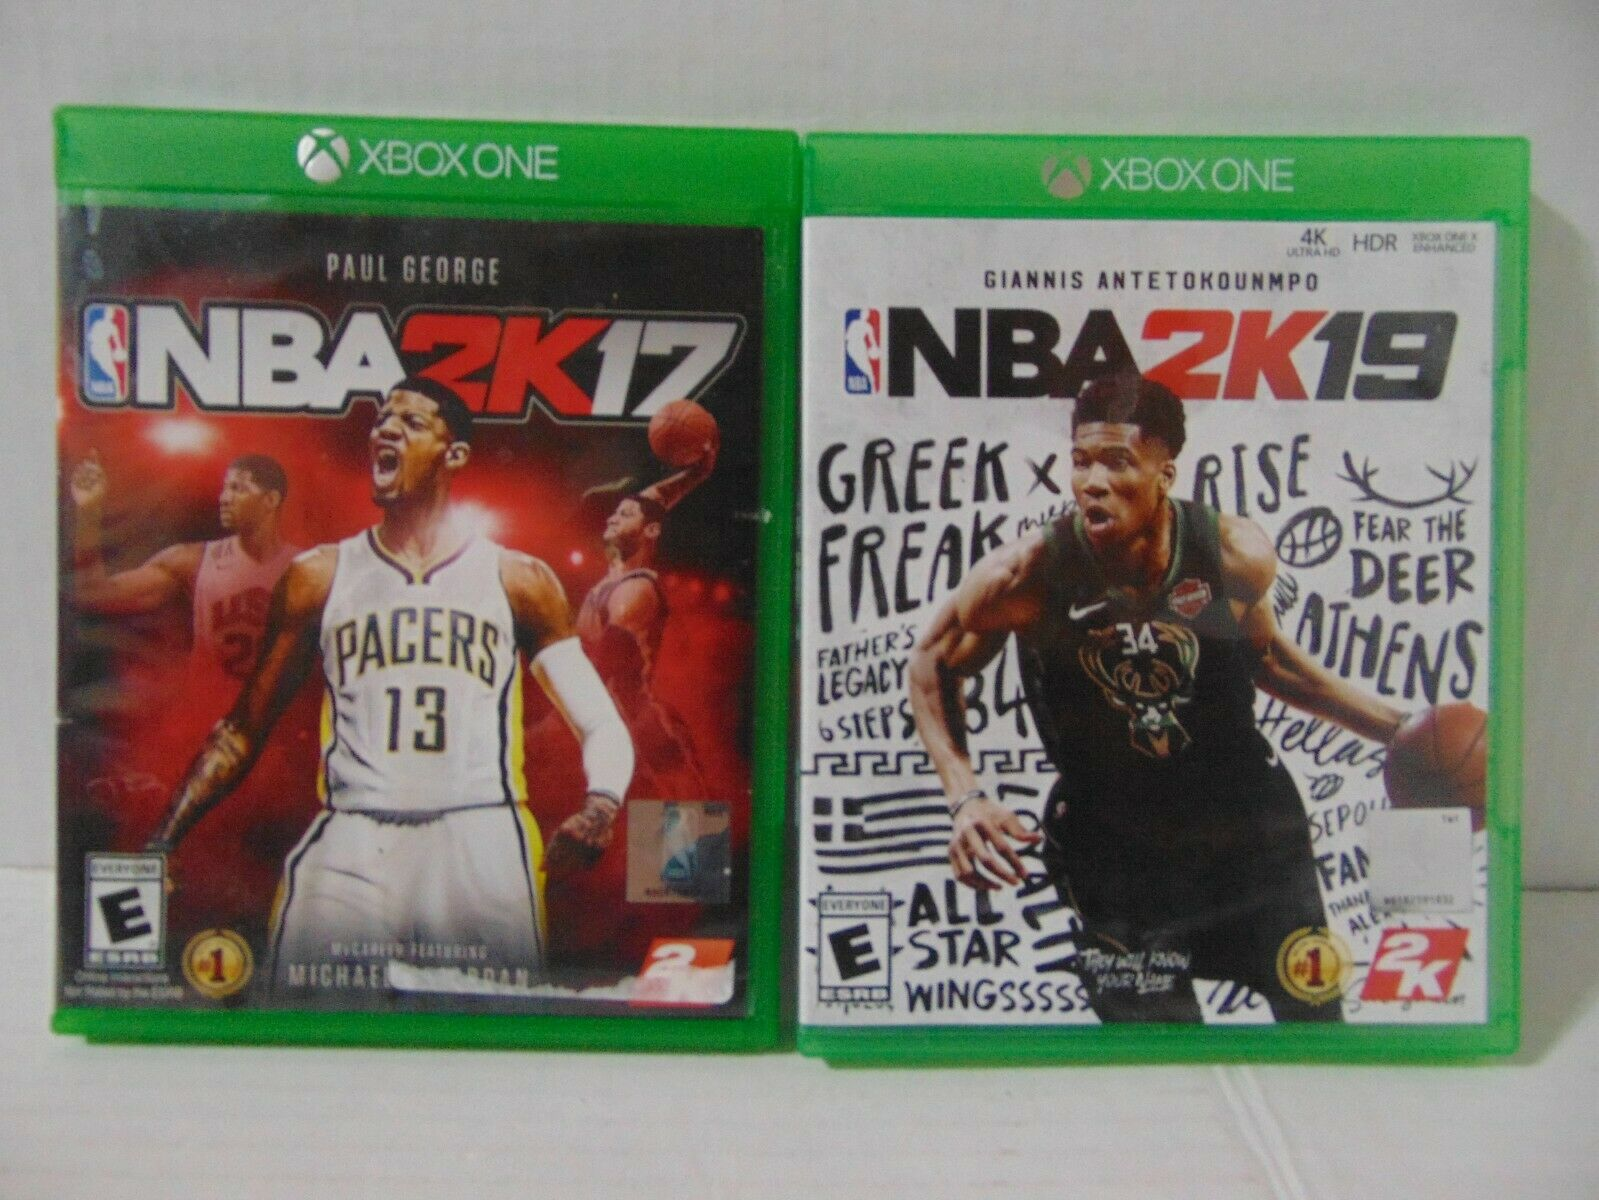 (2) Pack of Xbox One Games - NBA 2K19 & NBA 2k17 - Free Shipping!